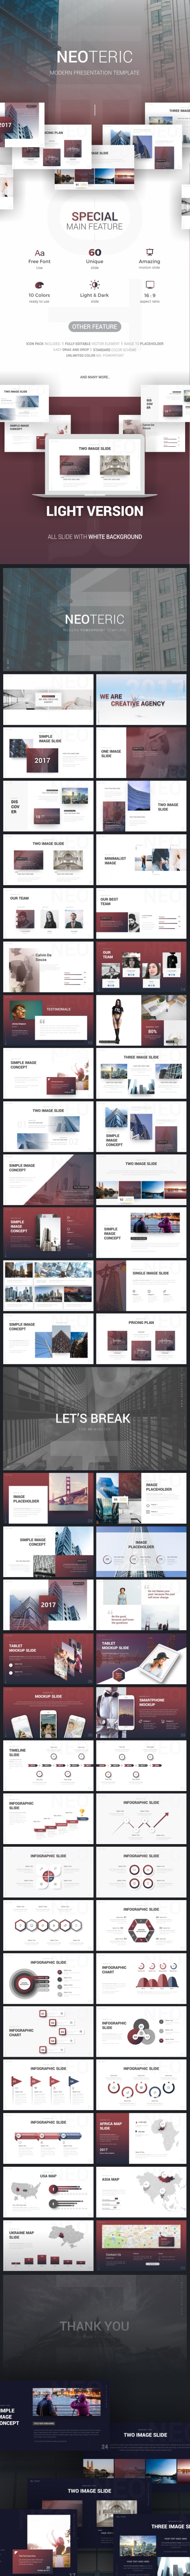 Neoteric Modern Presentation Template - Business PowerPoint Templates